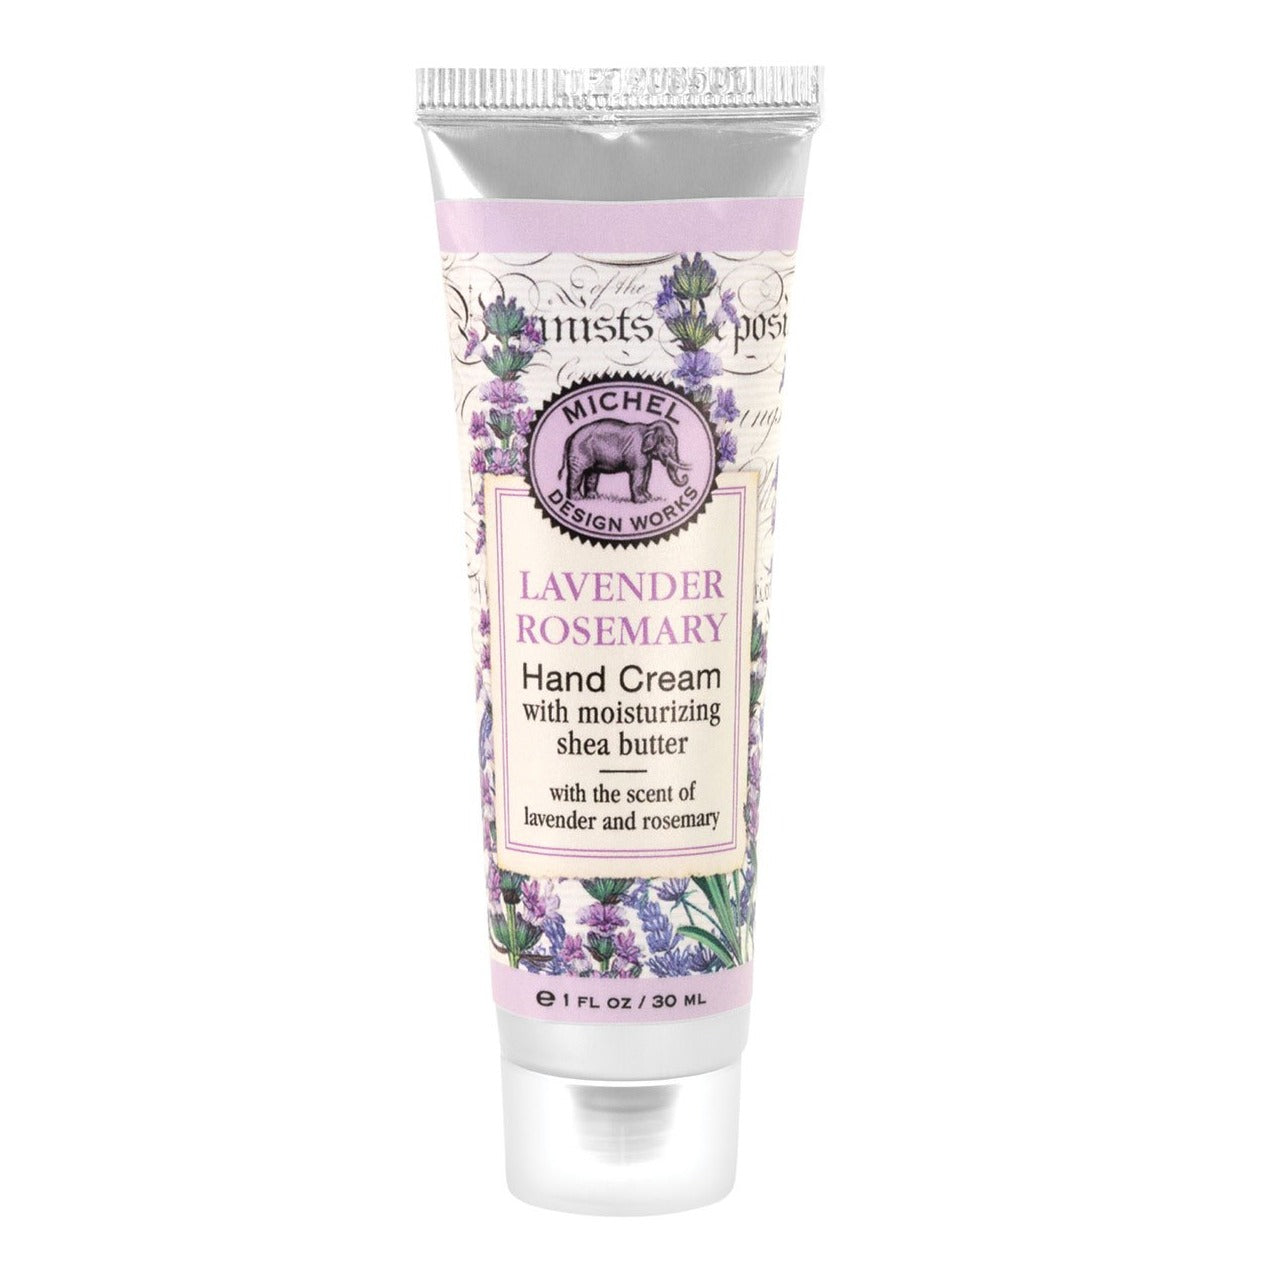 Hand Cream, Lavender Rosemary